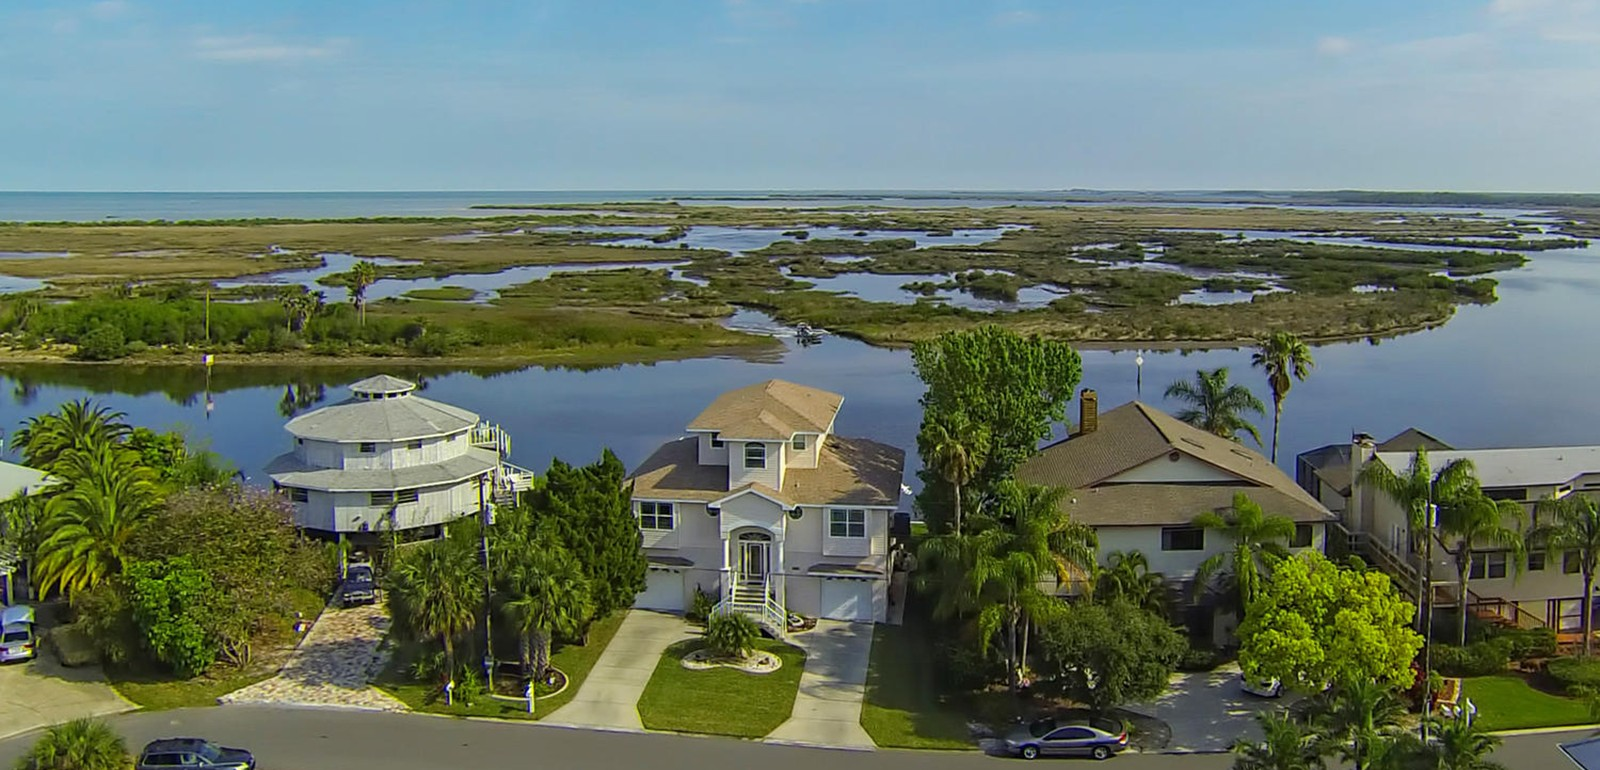 Hernando Beach - houses aerial photo